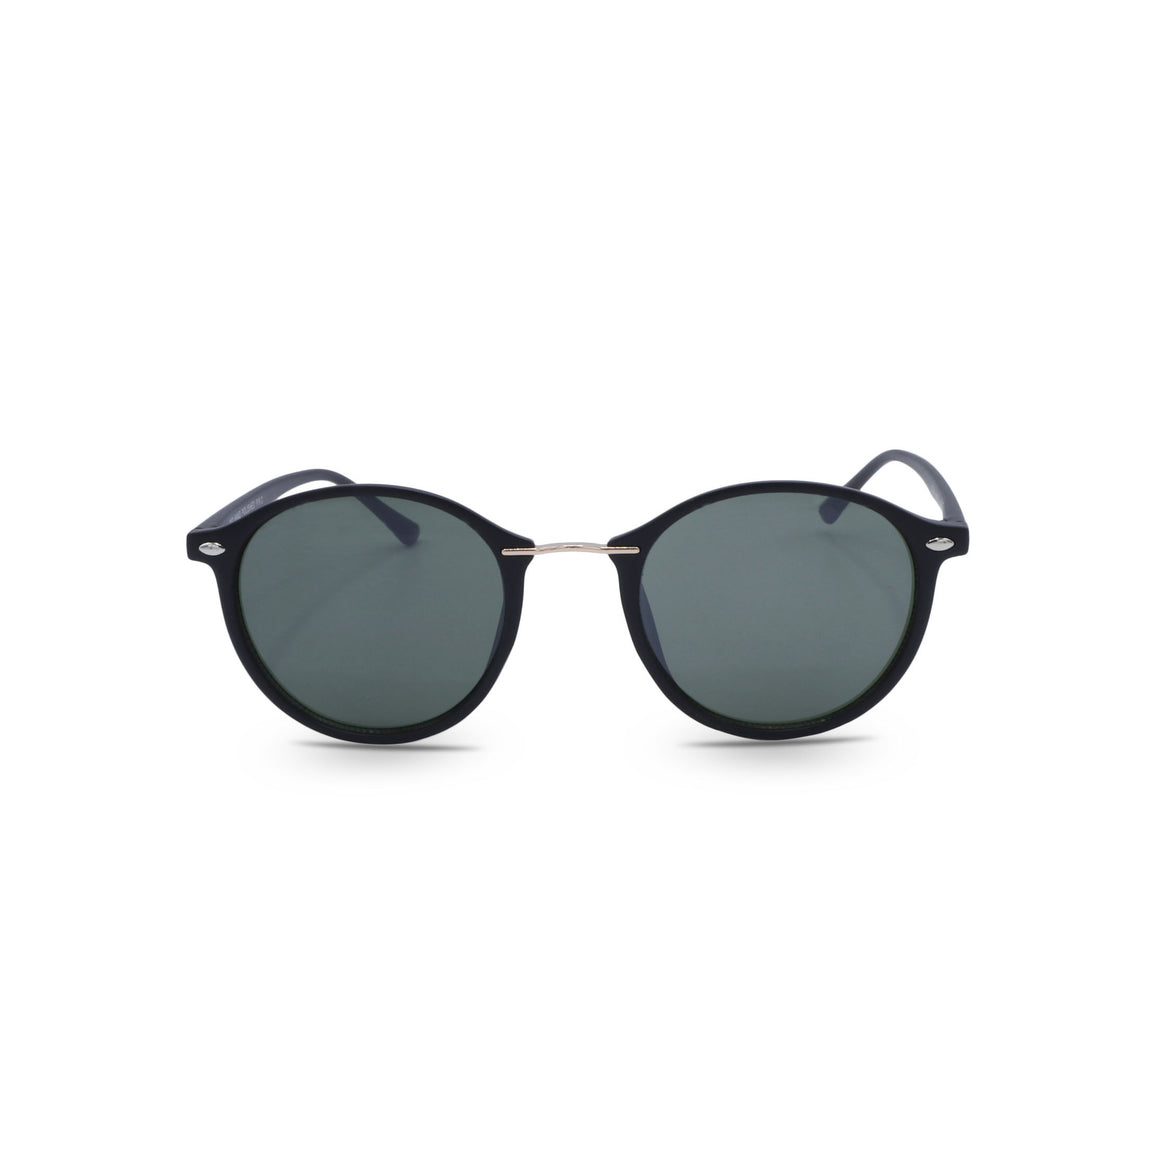 Retro Sunglasses Vintage Round in Matte Black Frame & Forest Green Lens